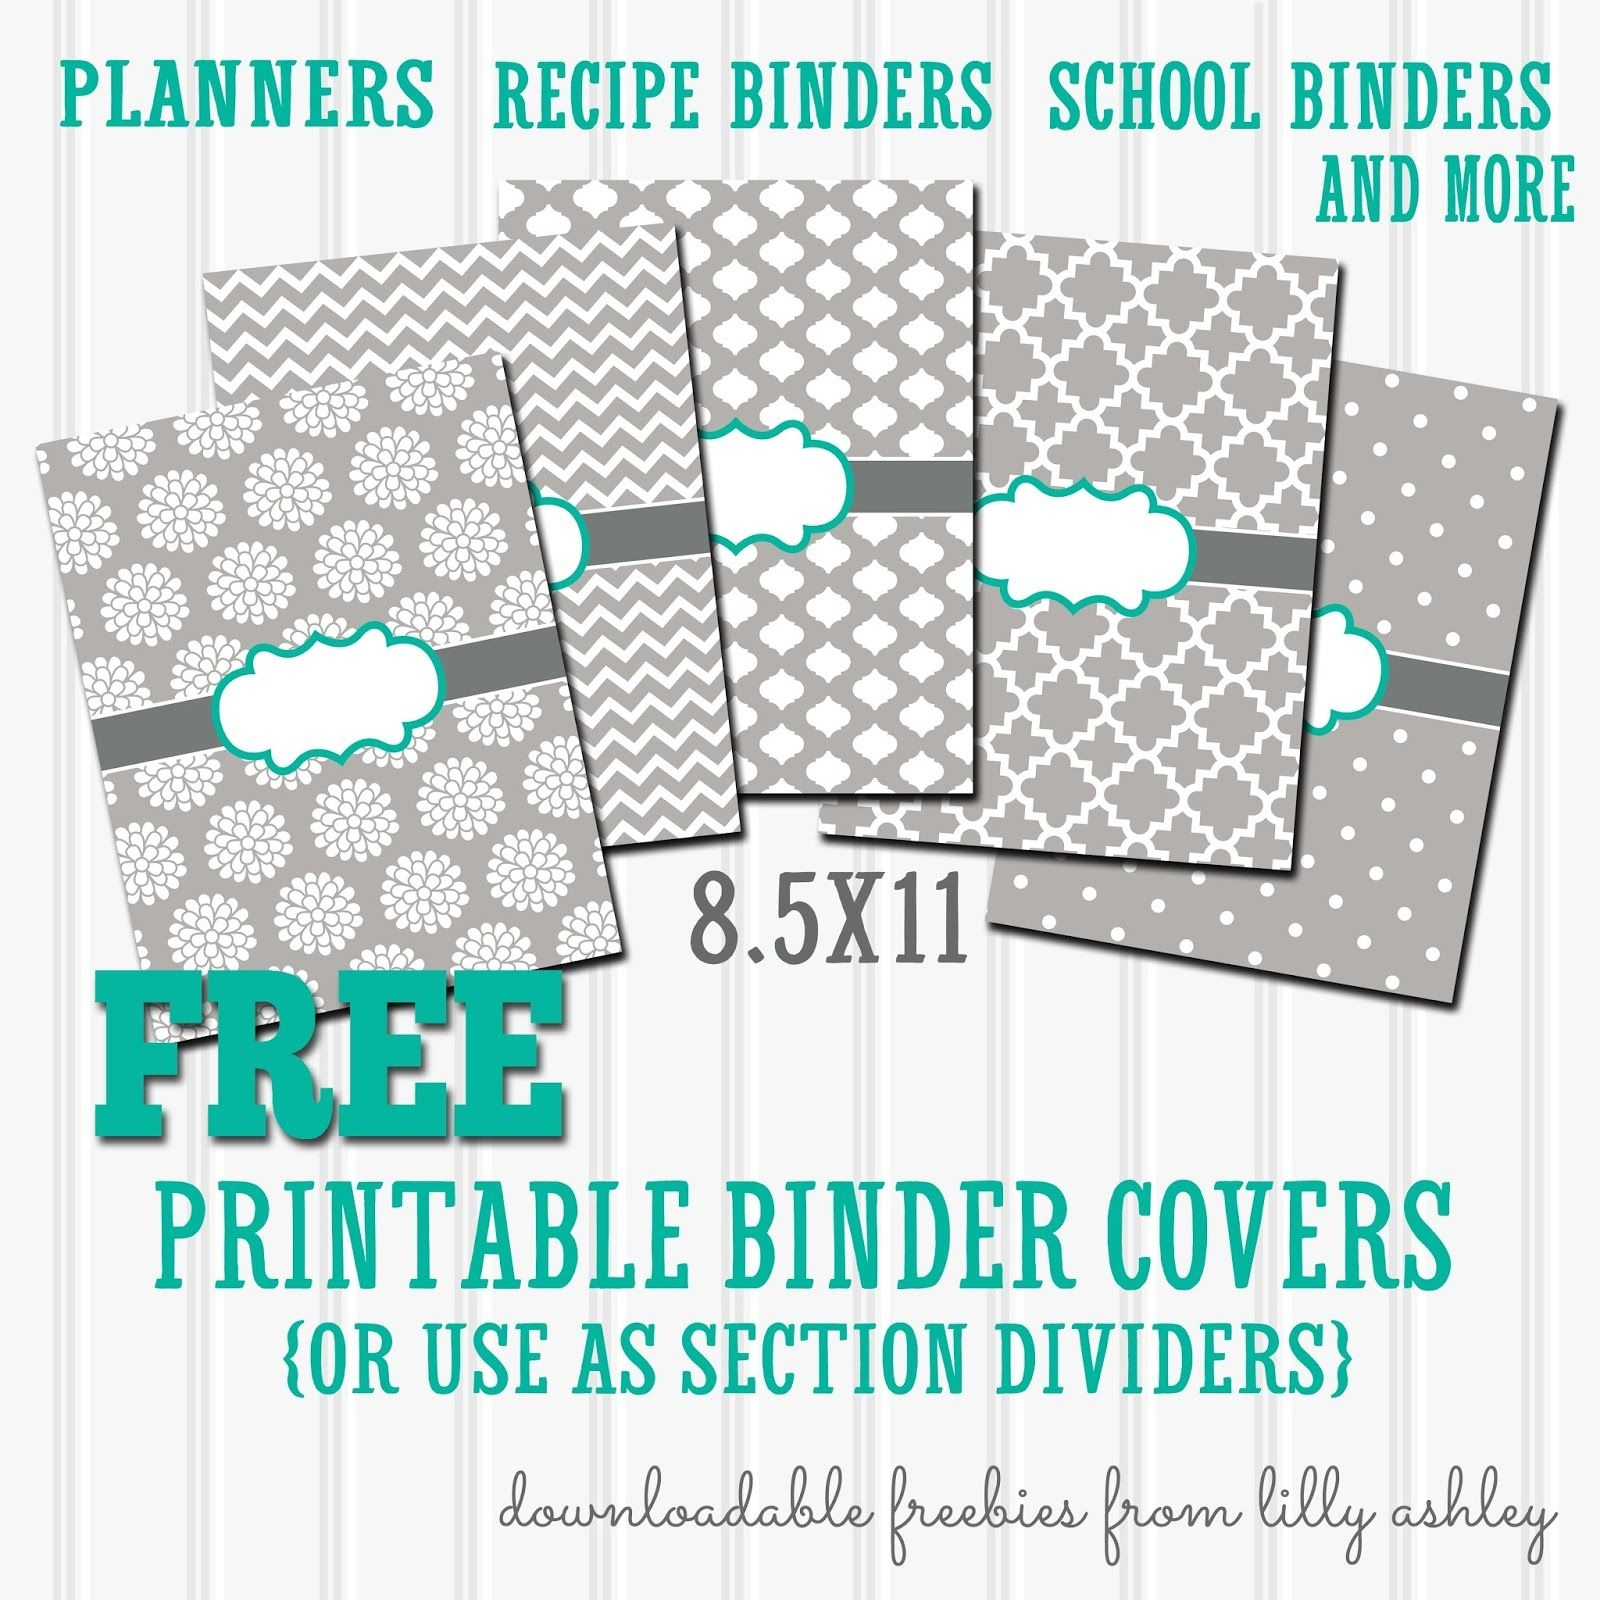 Free Binder Covers Printable Set | Preschool | Teacher Binder Covers - Free Printable Binder Covers And Spines